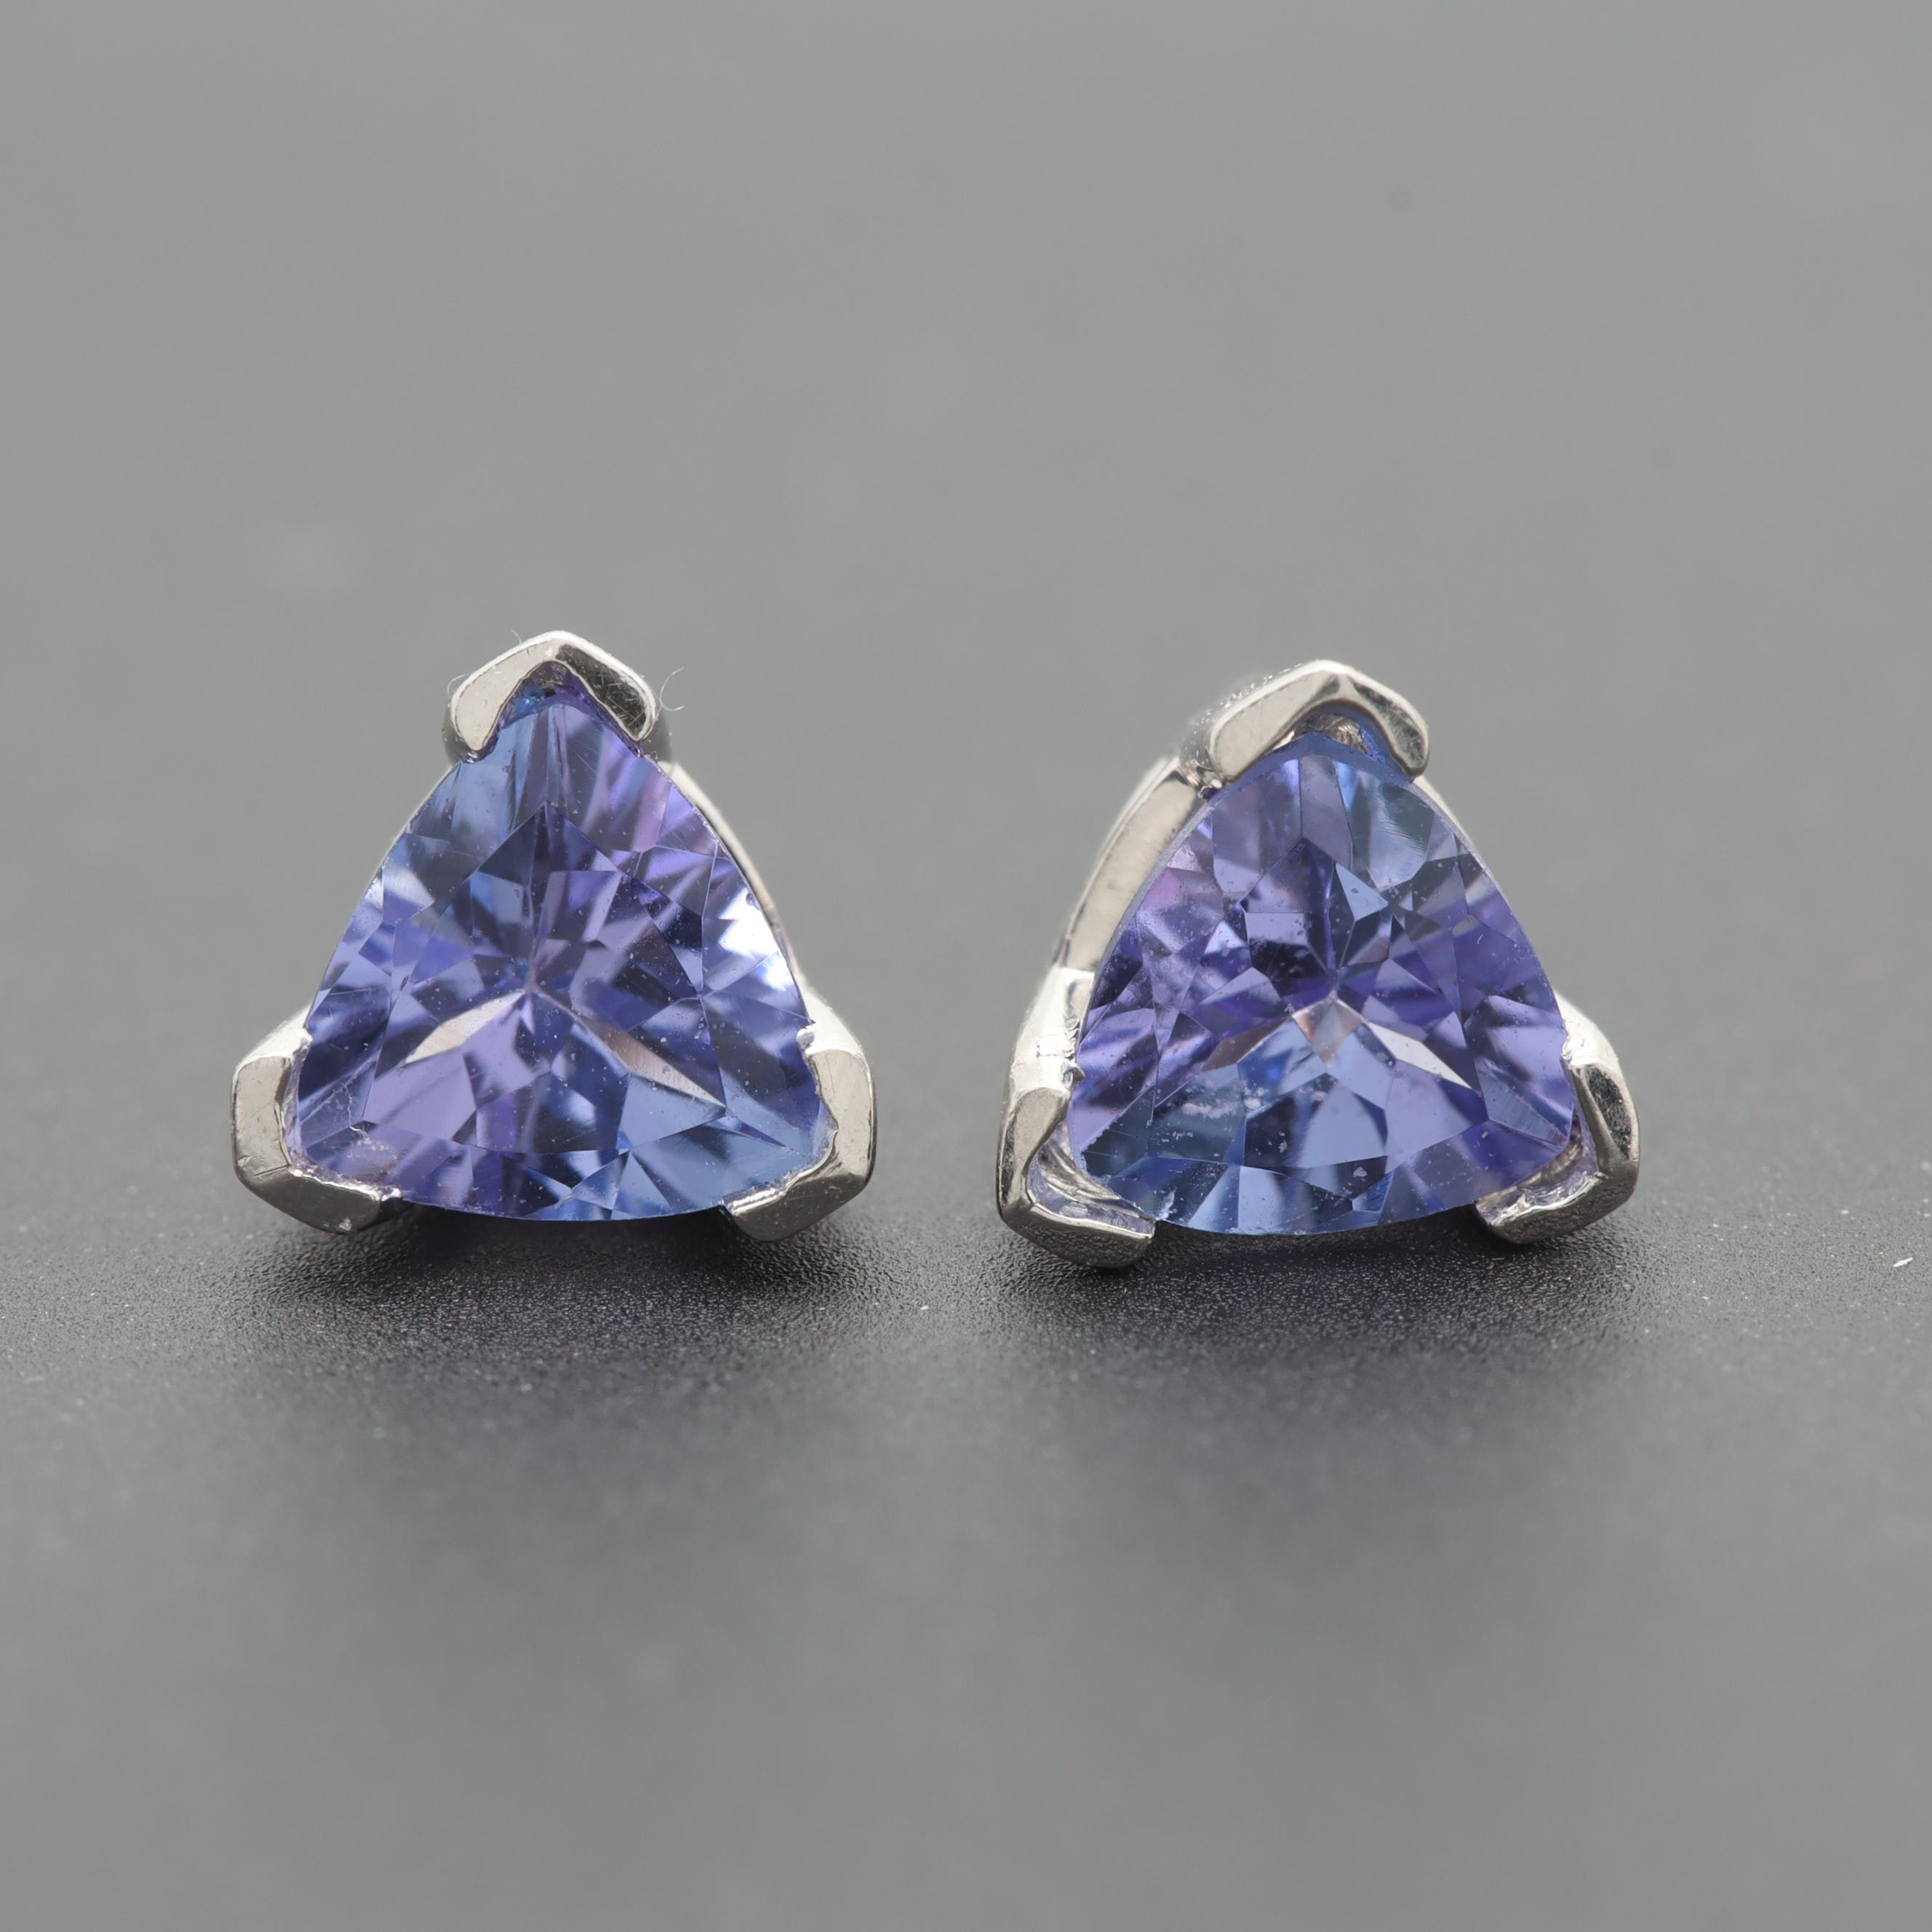 14K White Gold Tanzanite Stud Earrings